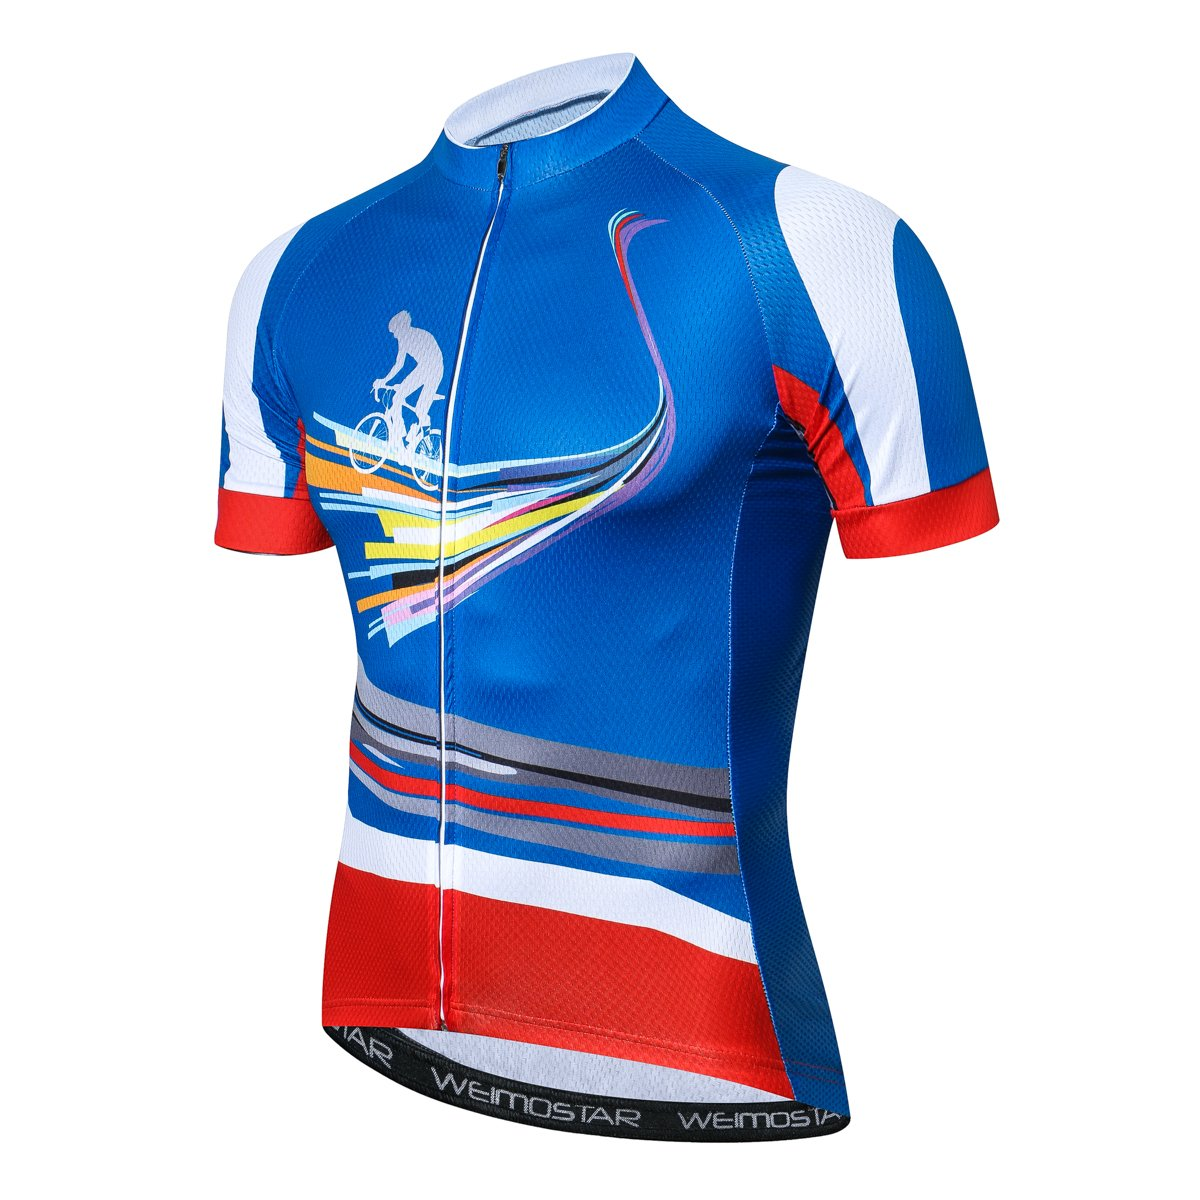 Cycling Jersey Riding Men Bike Bicycle Shirt Top Outdoor Sportswear with 3 Rear Pocket